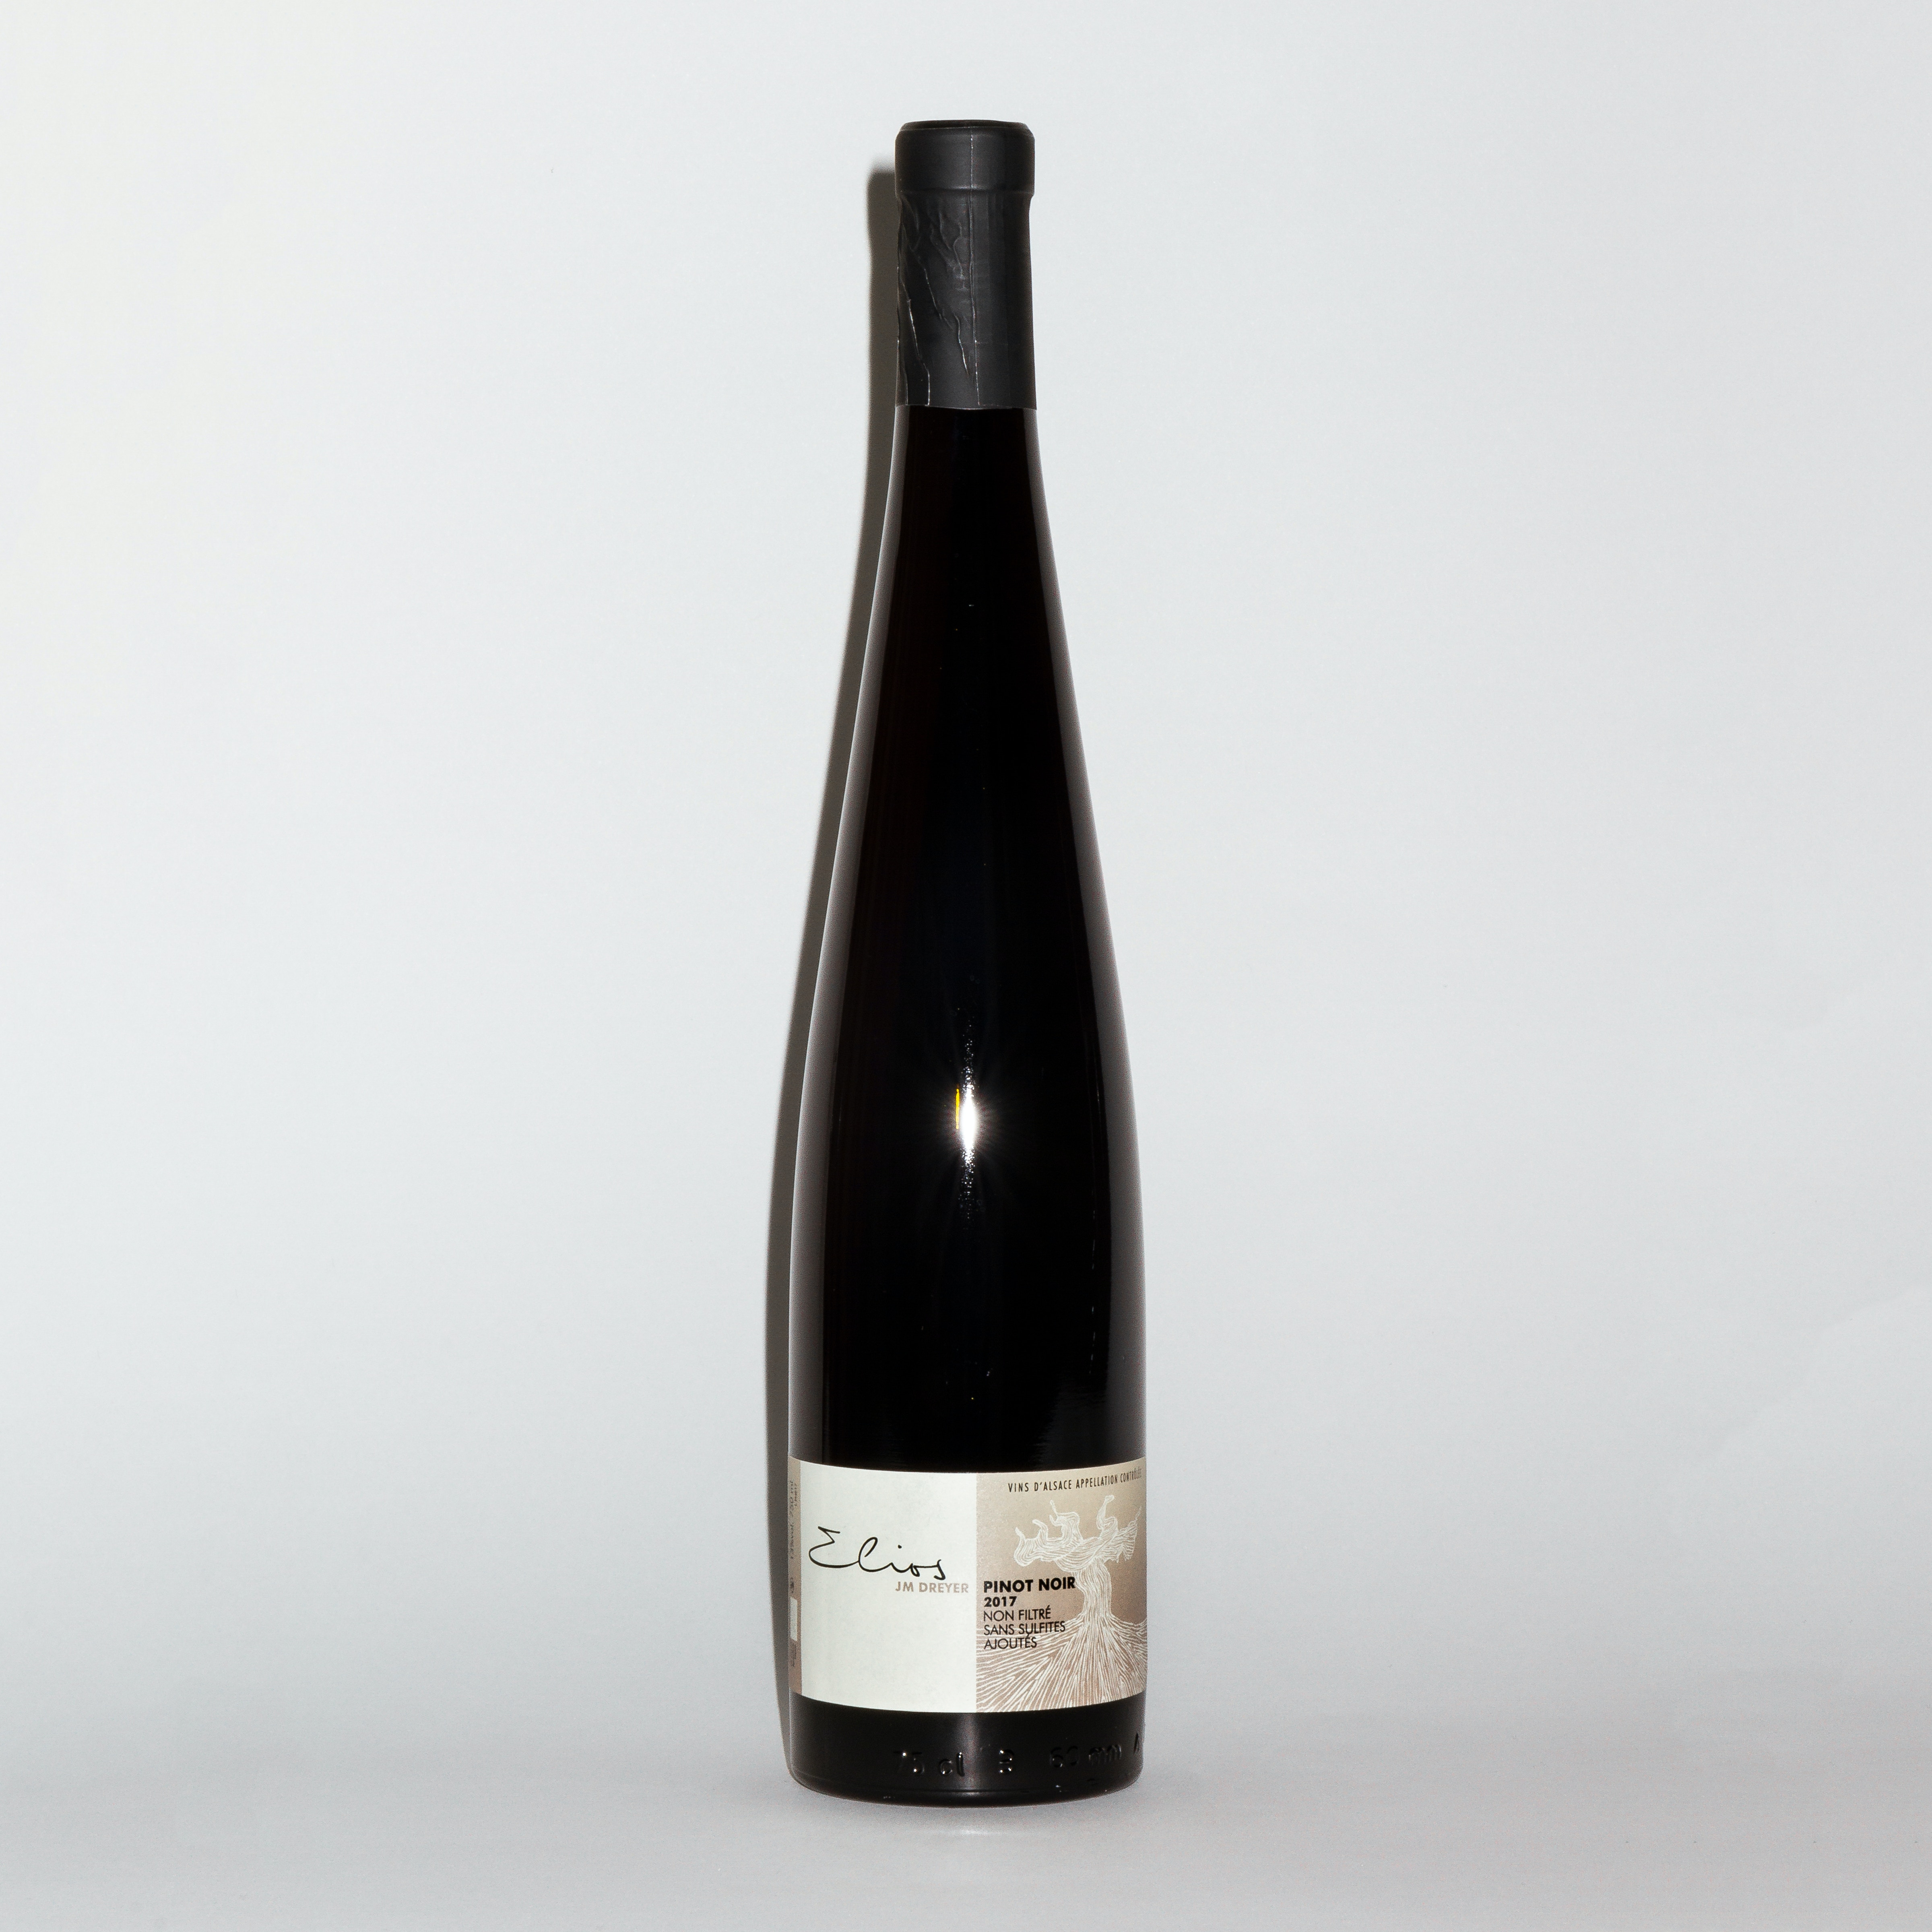 Pinot Noir 'Elios' 2017 by JM Dreyer